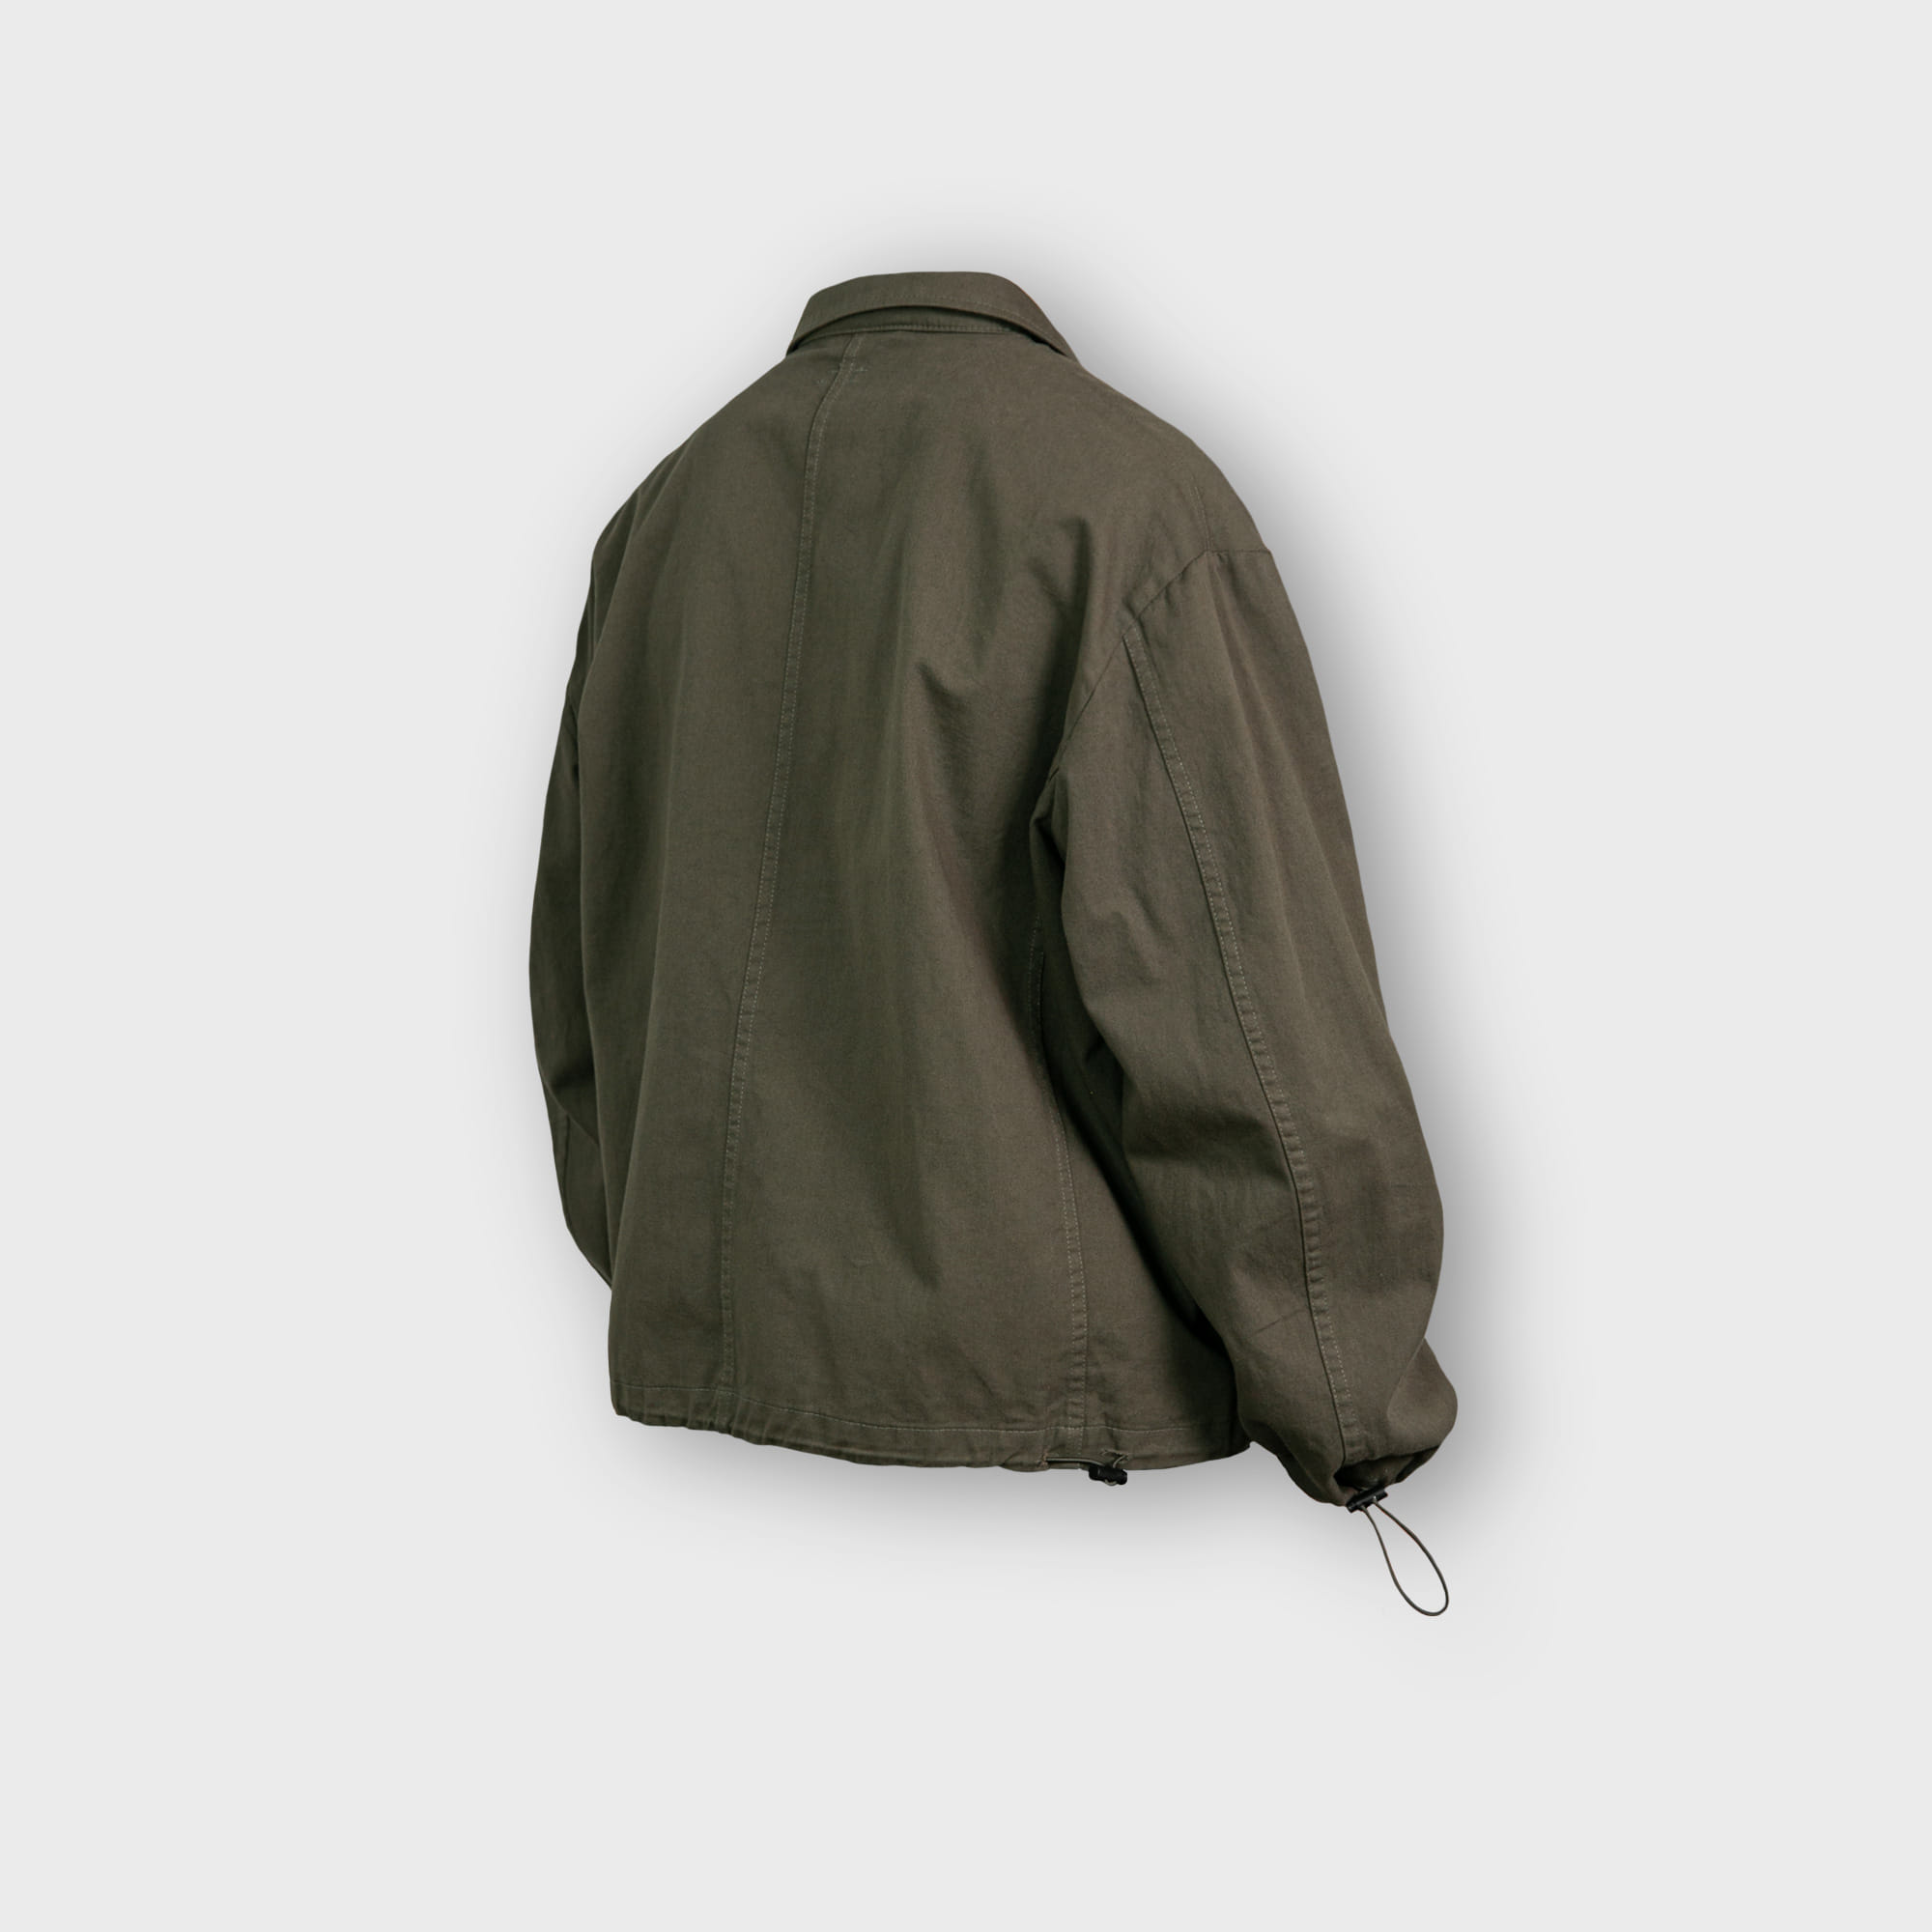 [AG] Twill Cotton String Shirt Jacket - Khaki